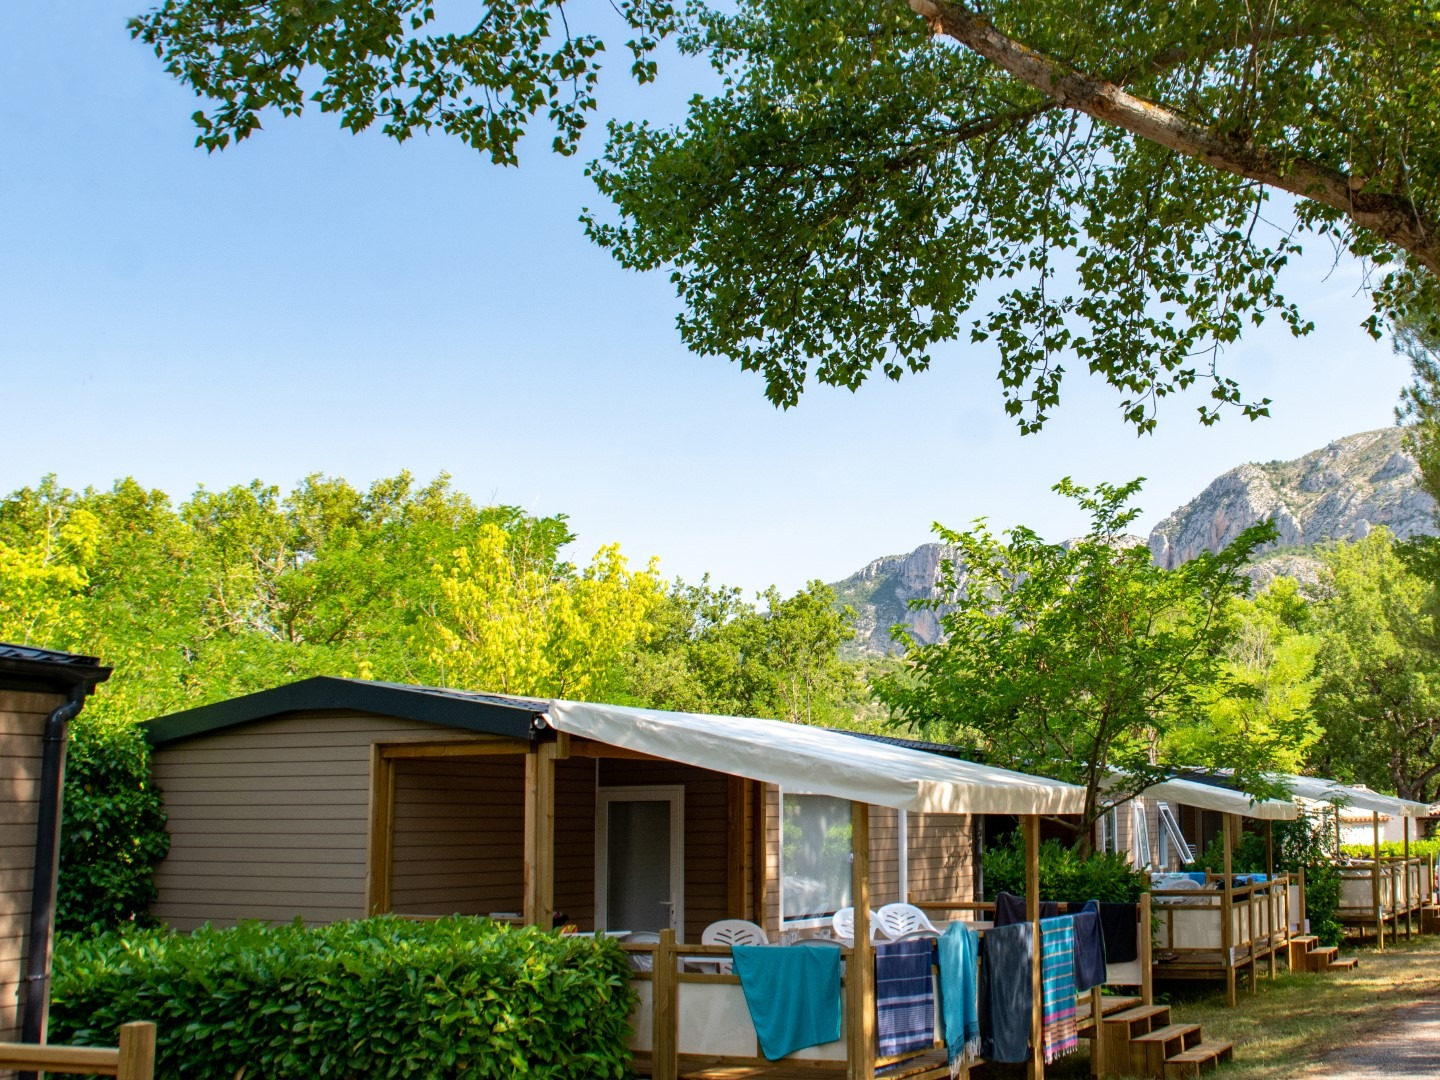 franse-camping Camping Saint Clair Moustiers Sainte Marie